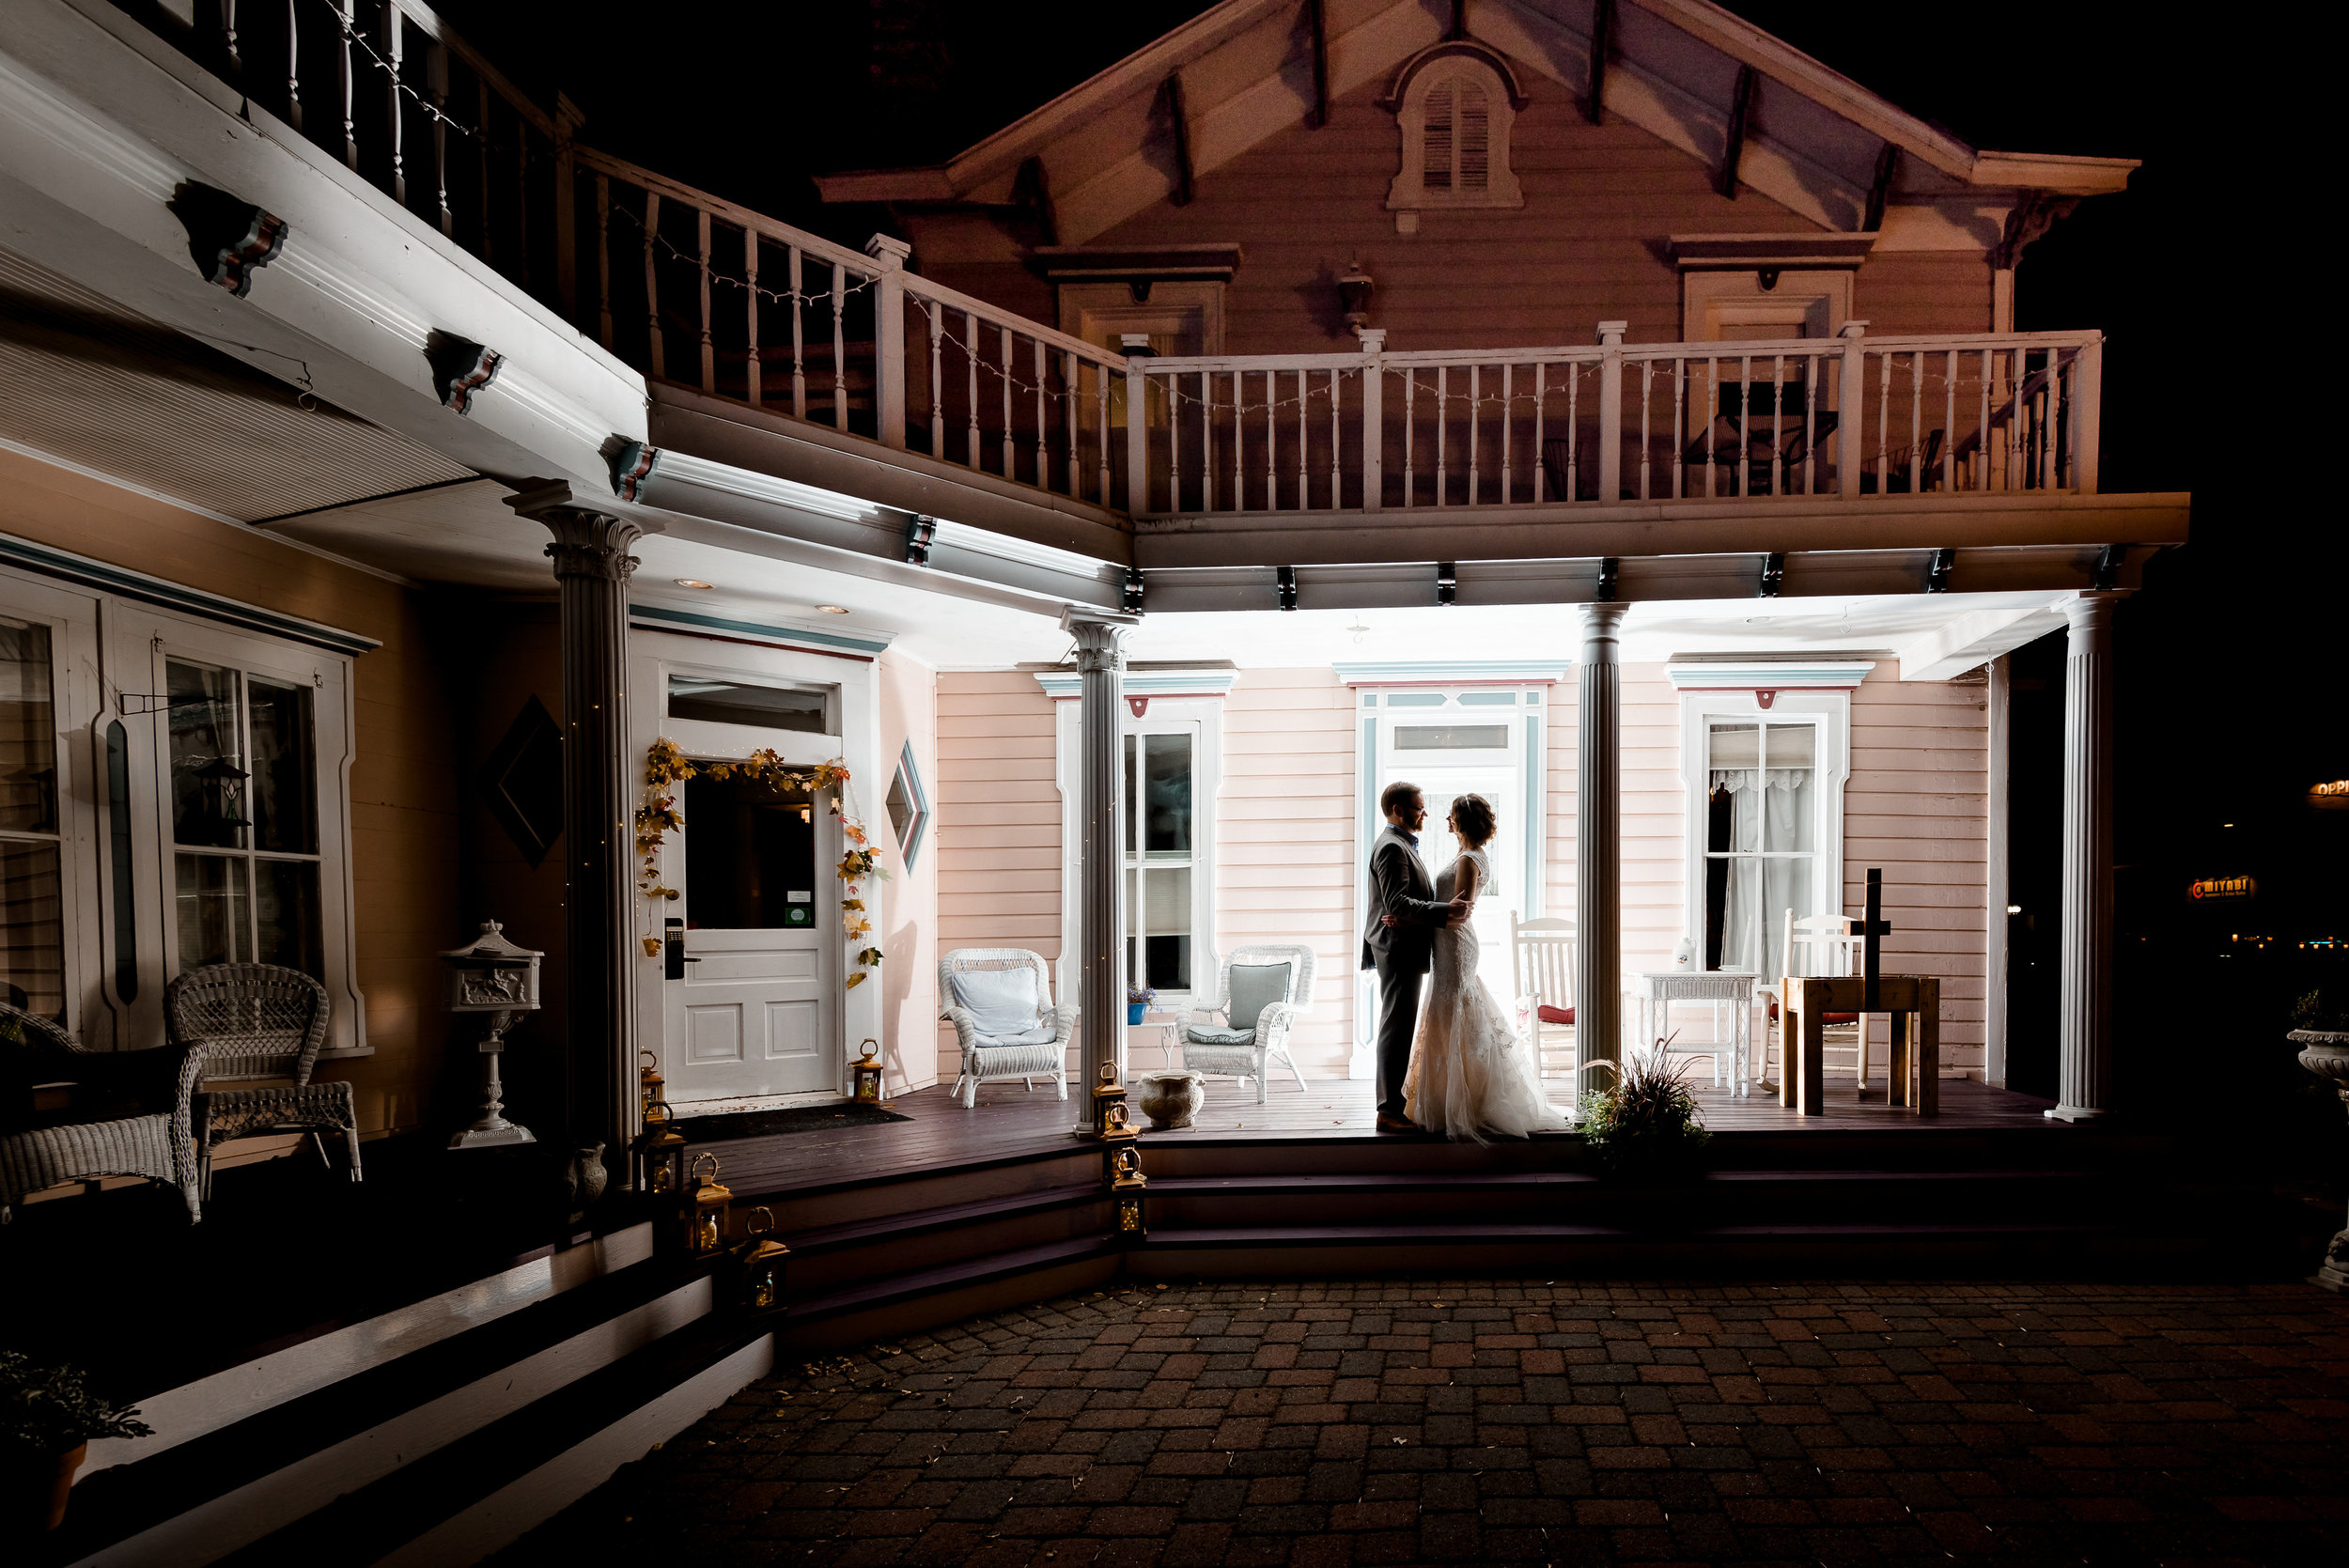 Bird House Inn at Night with Bride and Groom Intimate Wedding Reception - Silhouette - Excelsior MN Wedding Photographer